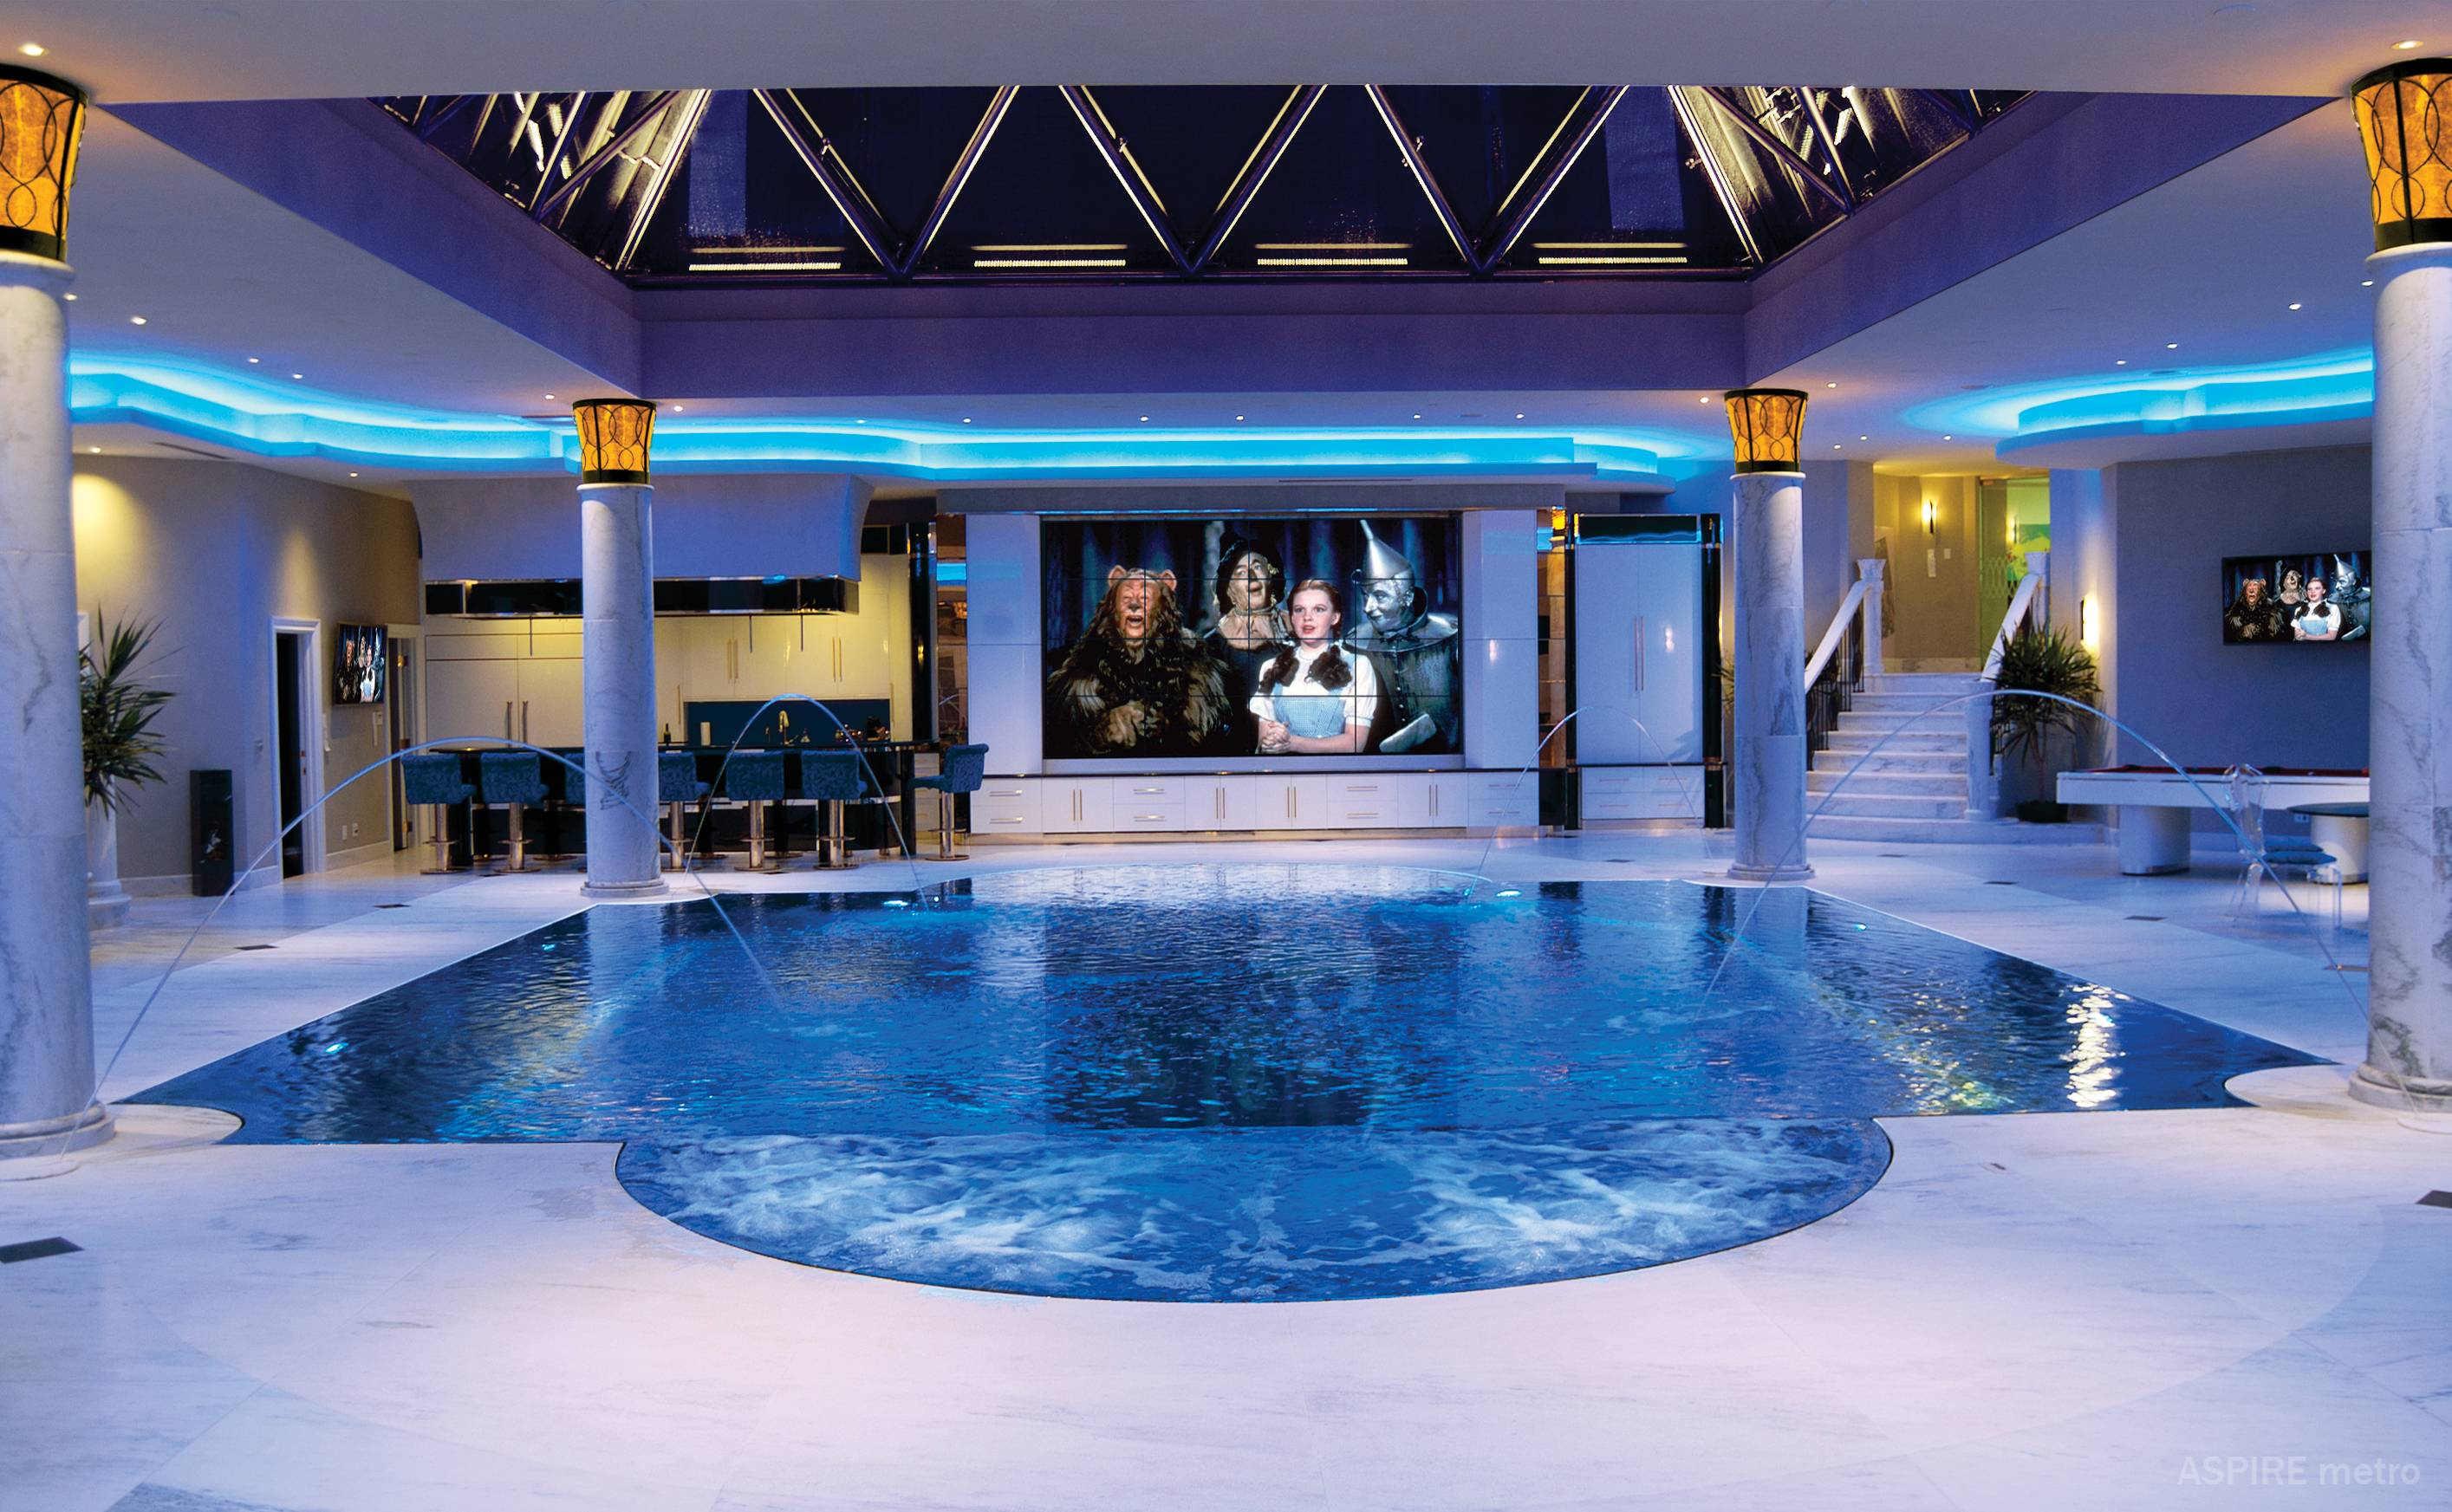 8 Cozy And Cool Indoor Pool Rooms